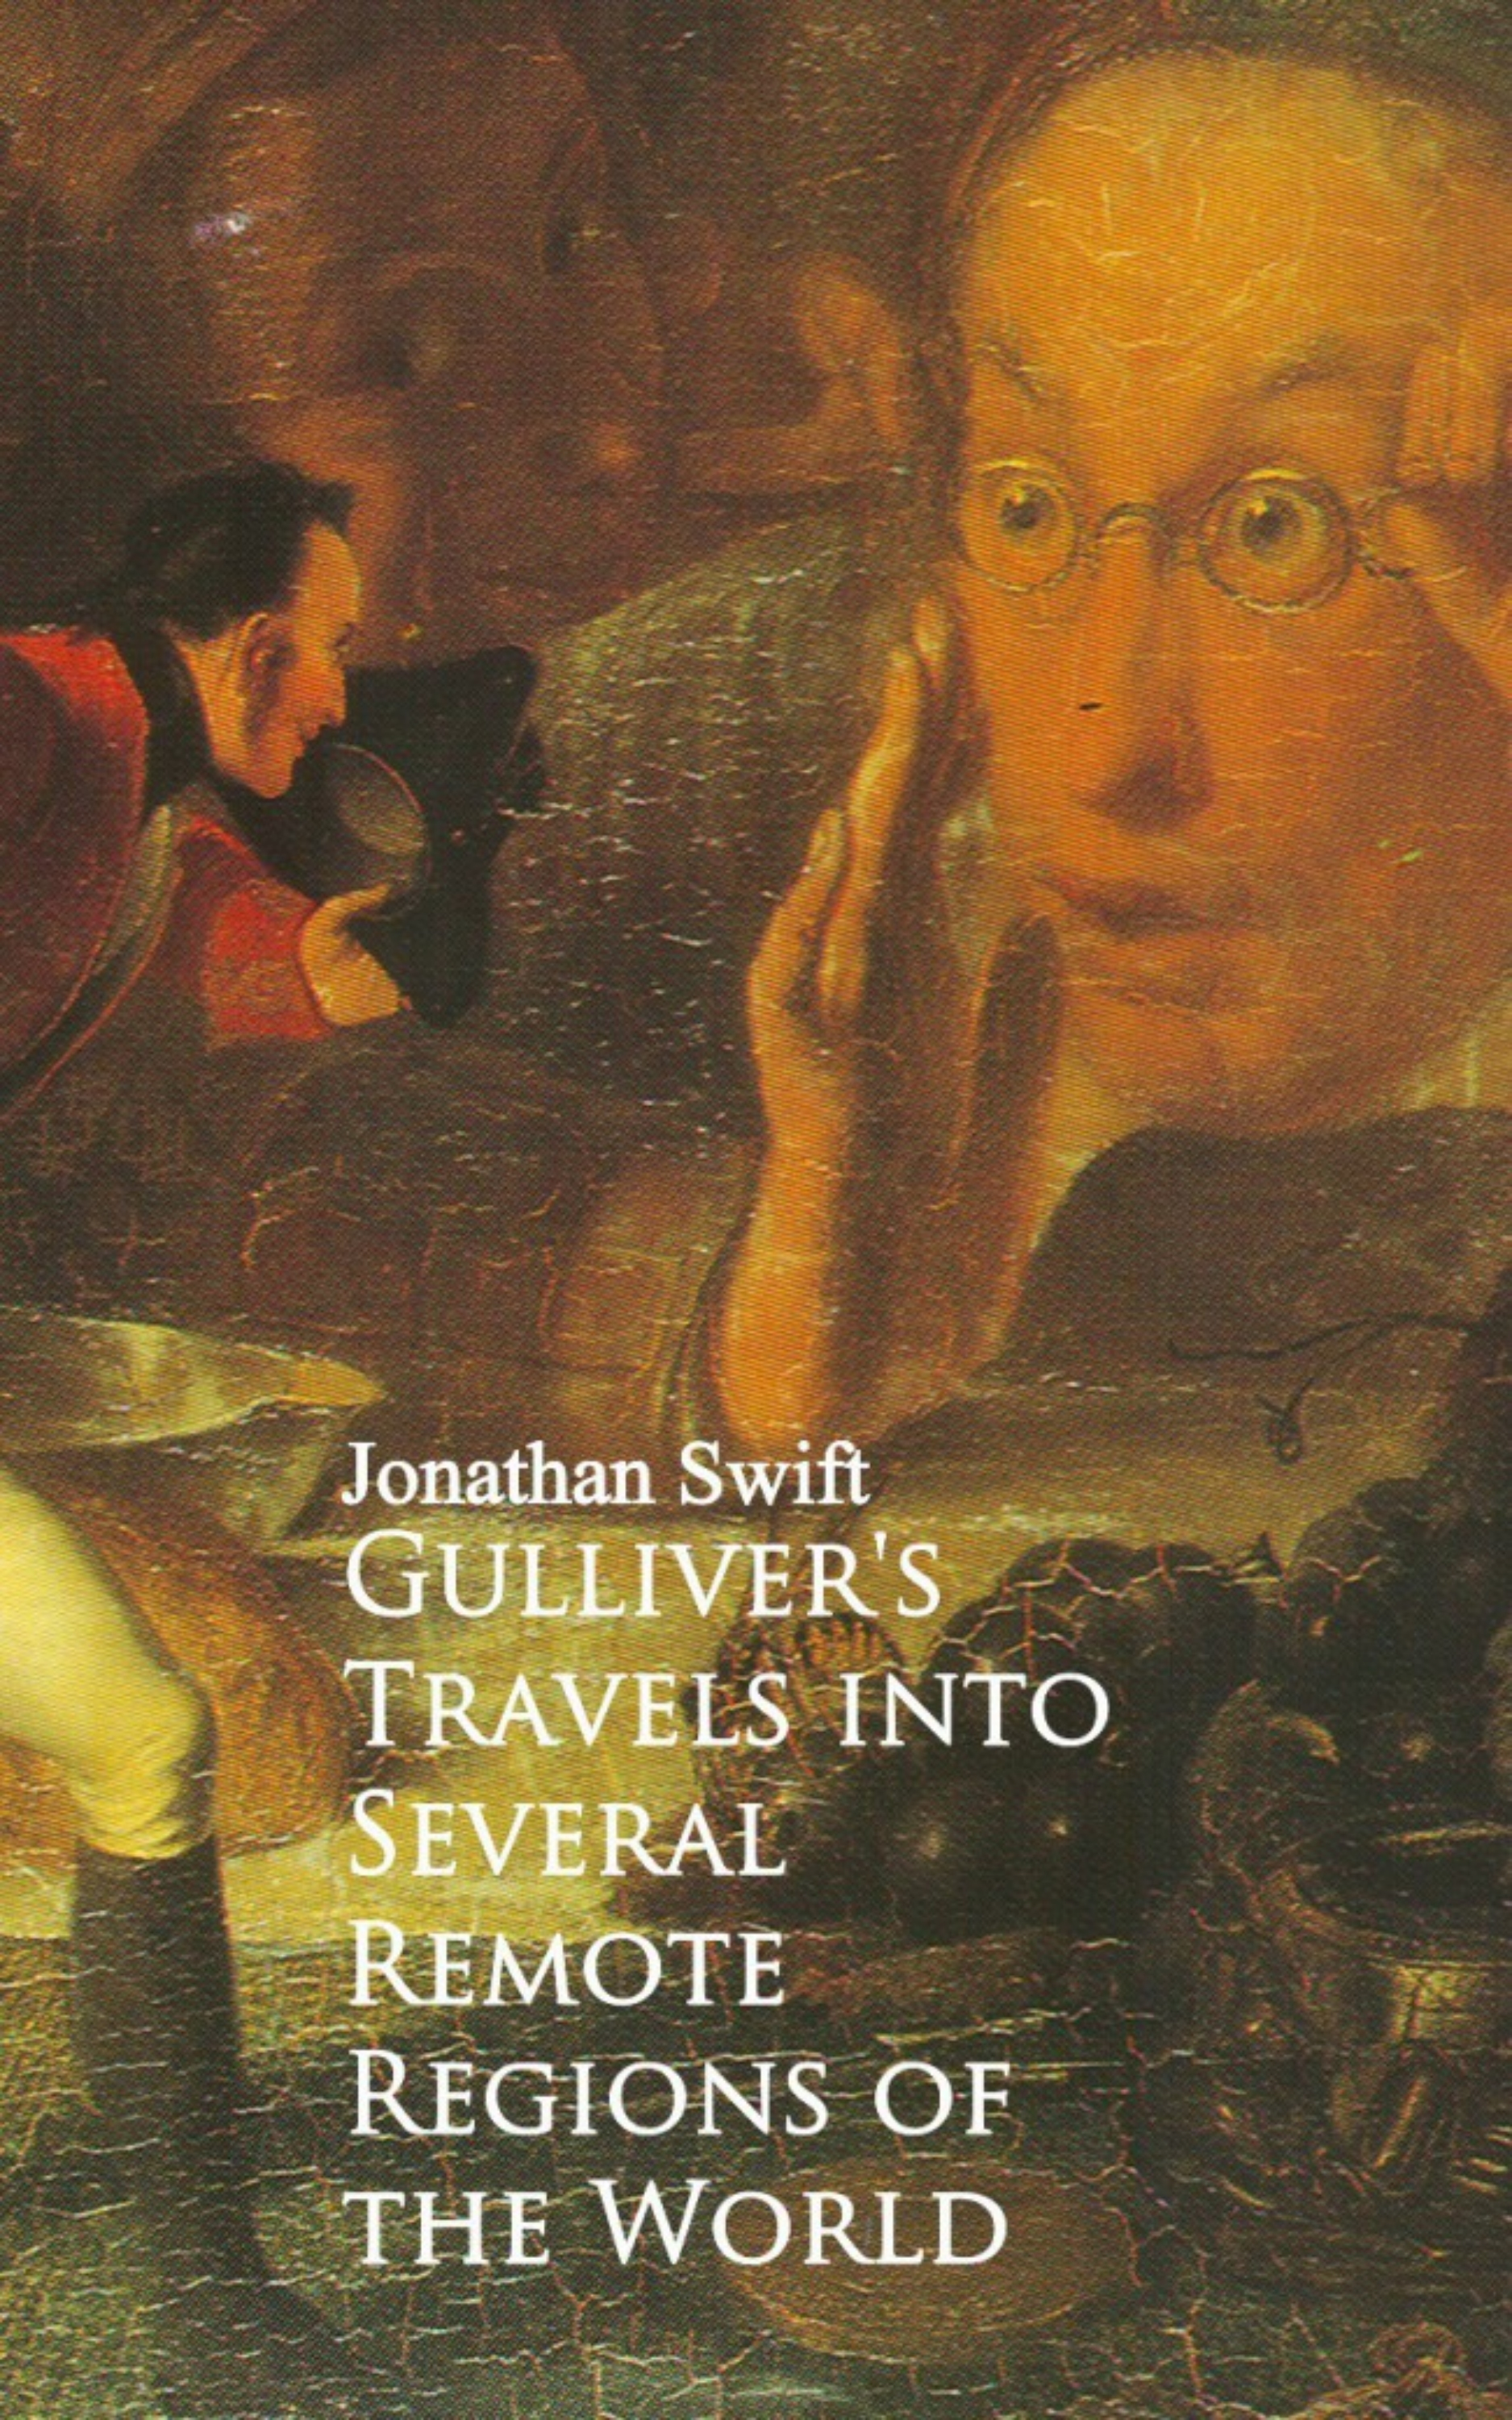 Jonathan Swift Gulliver's Travels into Several Remote Regions of the World j swift travels into several remote nations of the world